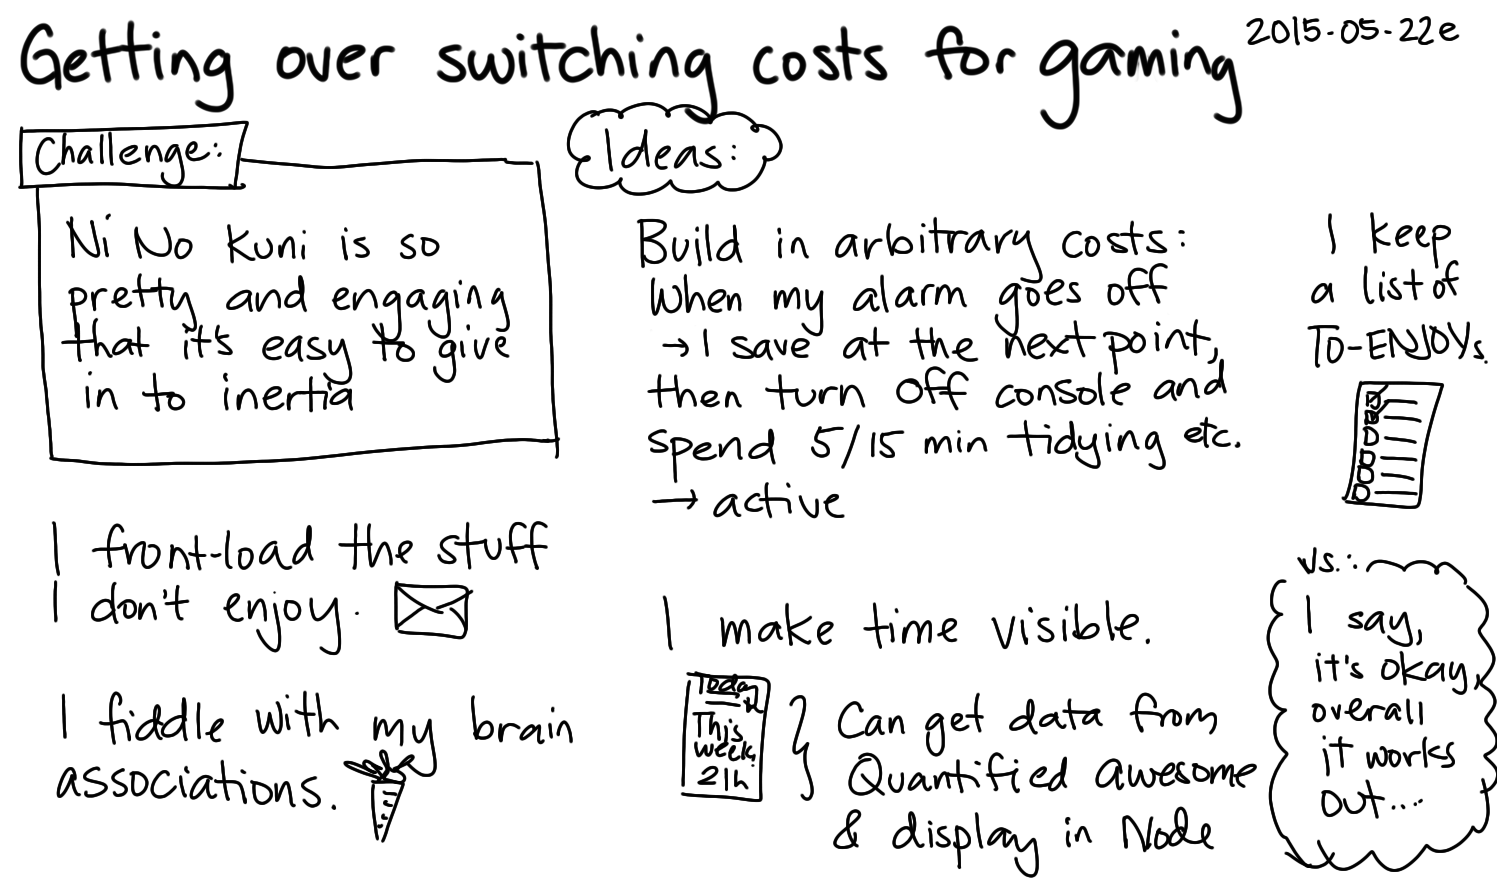 2015-05-22e Getting over switching costs for gaming -- index card #productivity #motivation #gaming #time.png